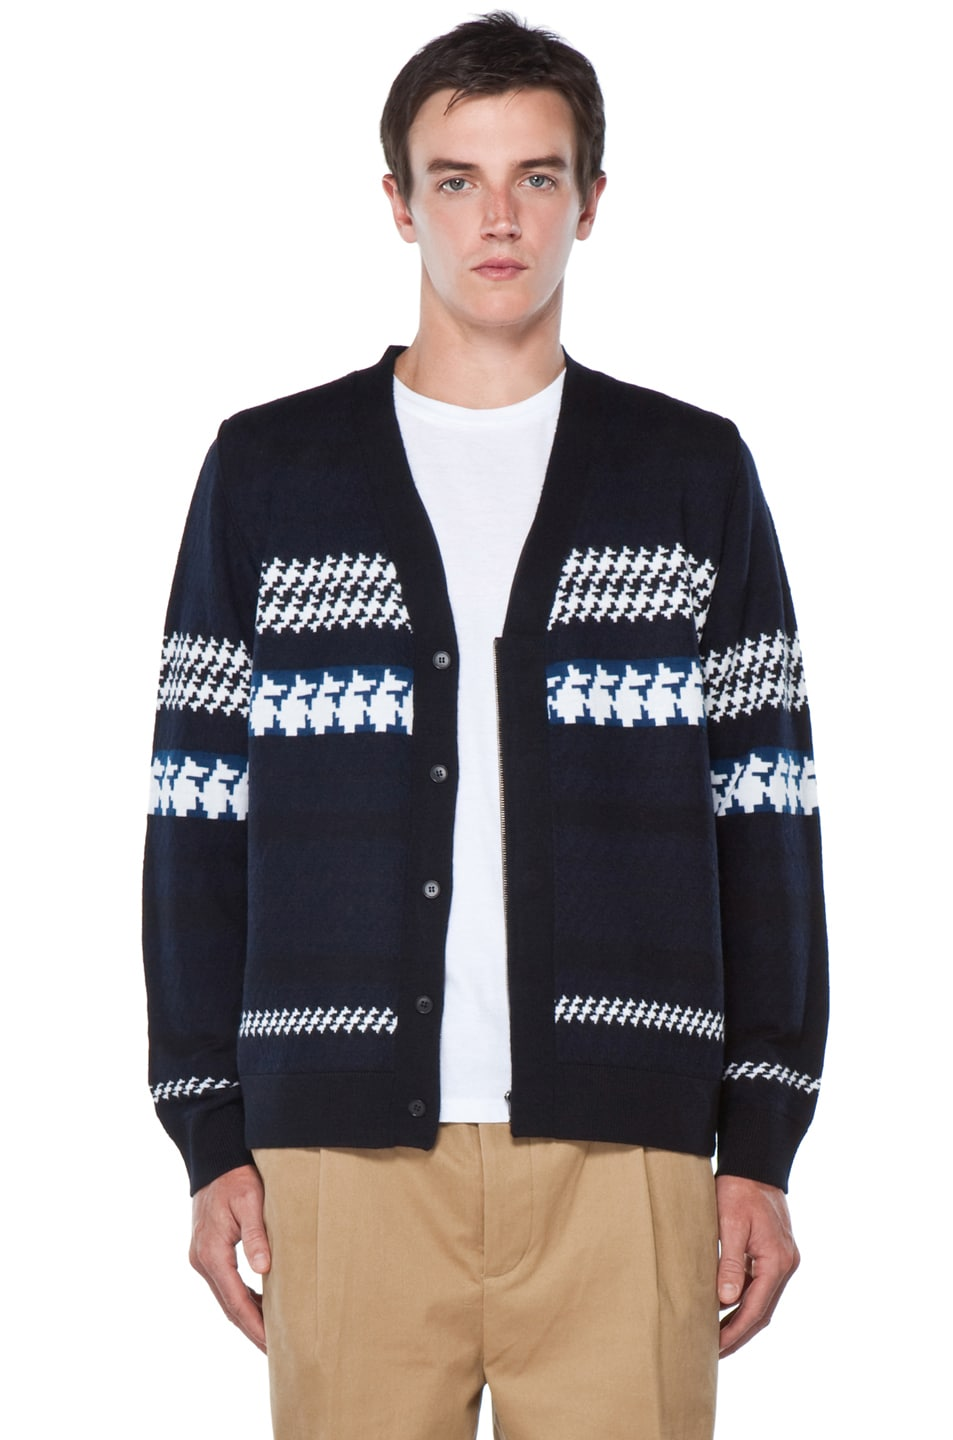 Image 2 of 3.1 phillip lim Jacquard Pattern Cardigan in Navy